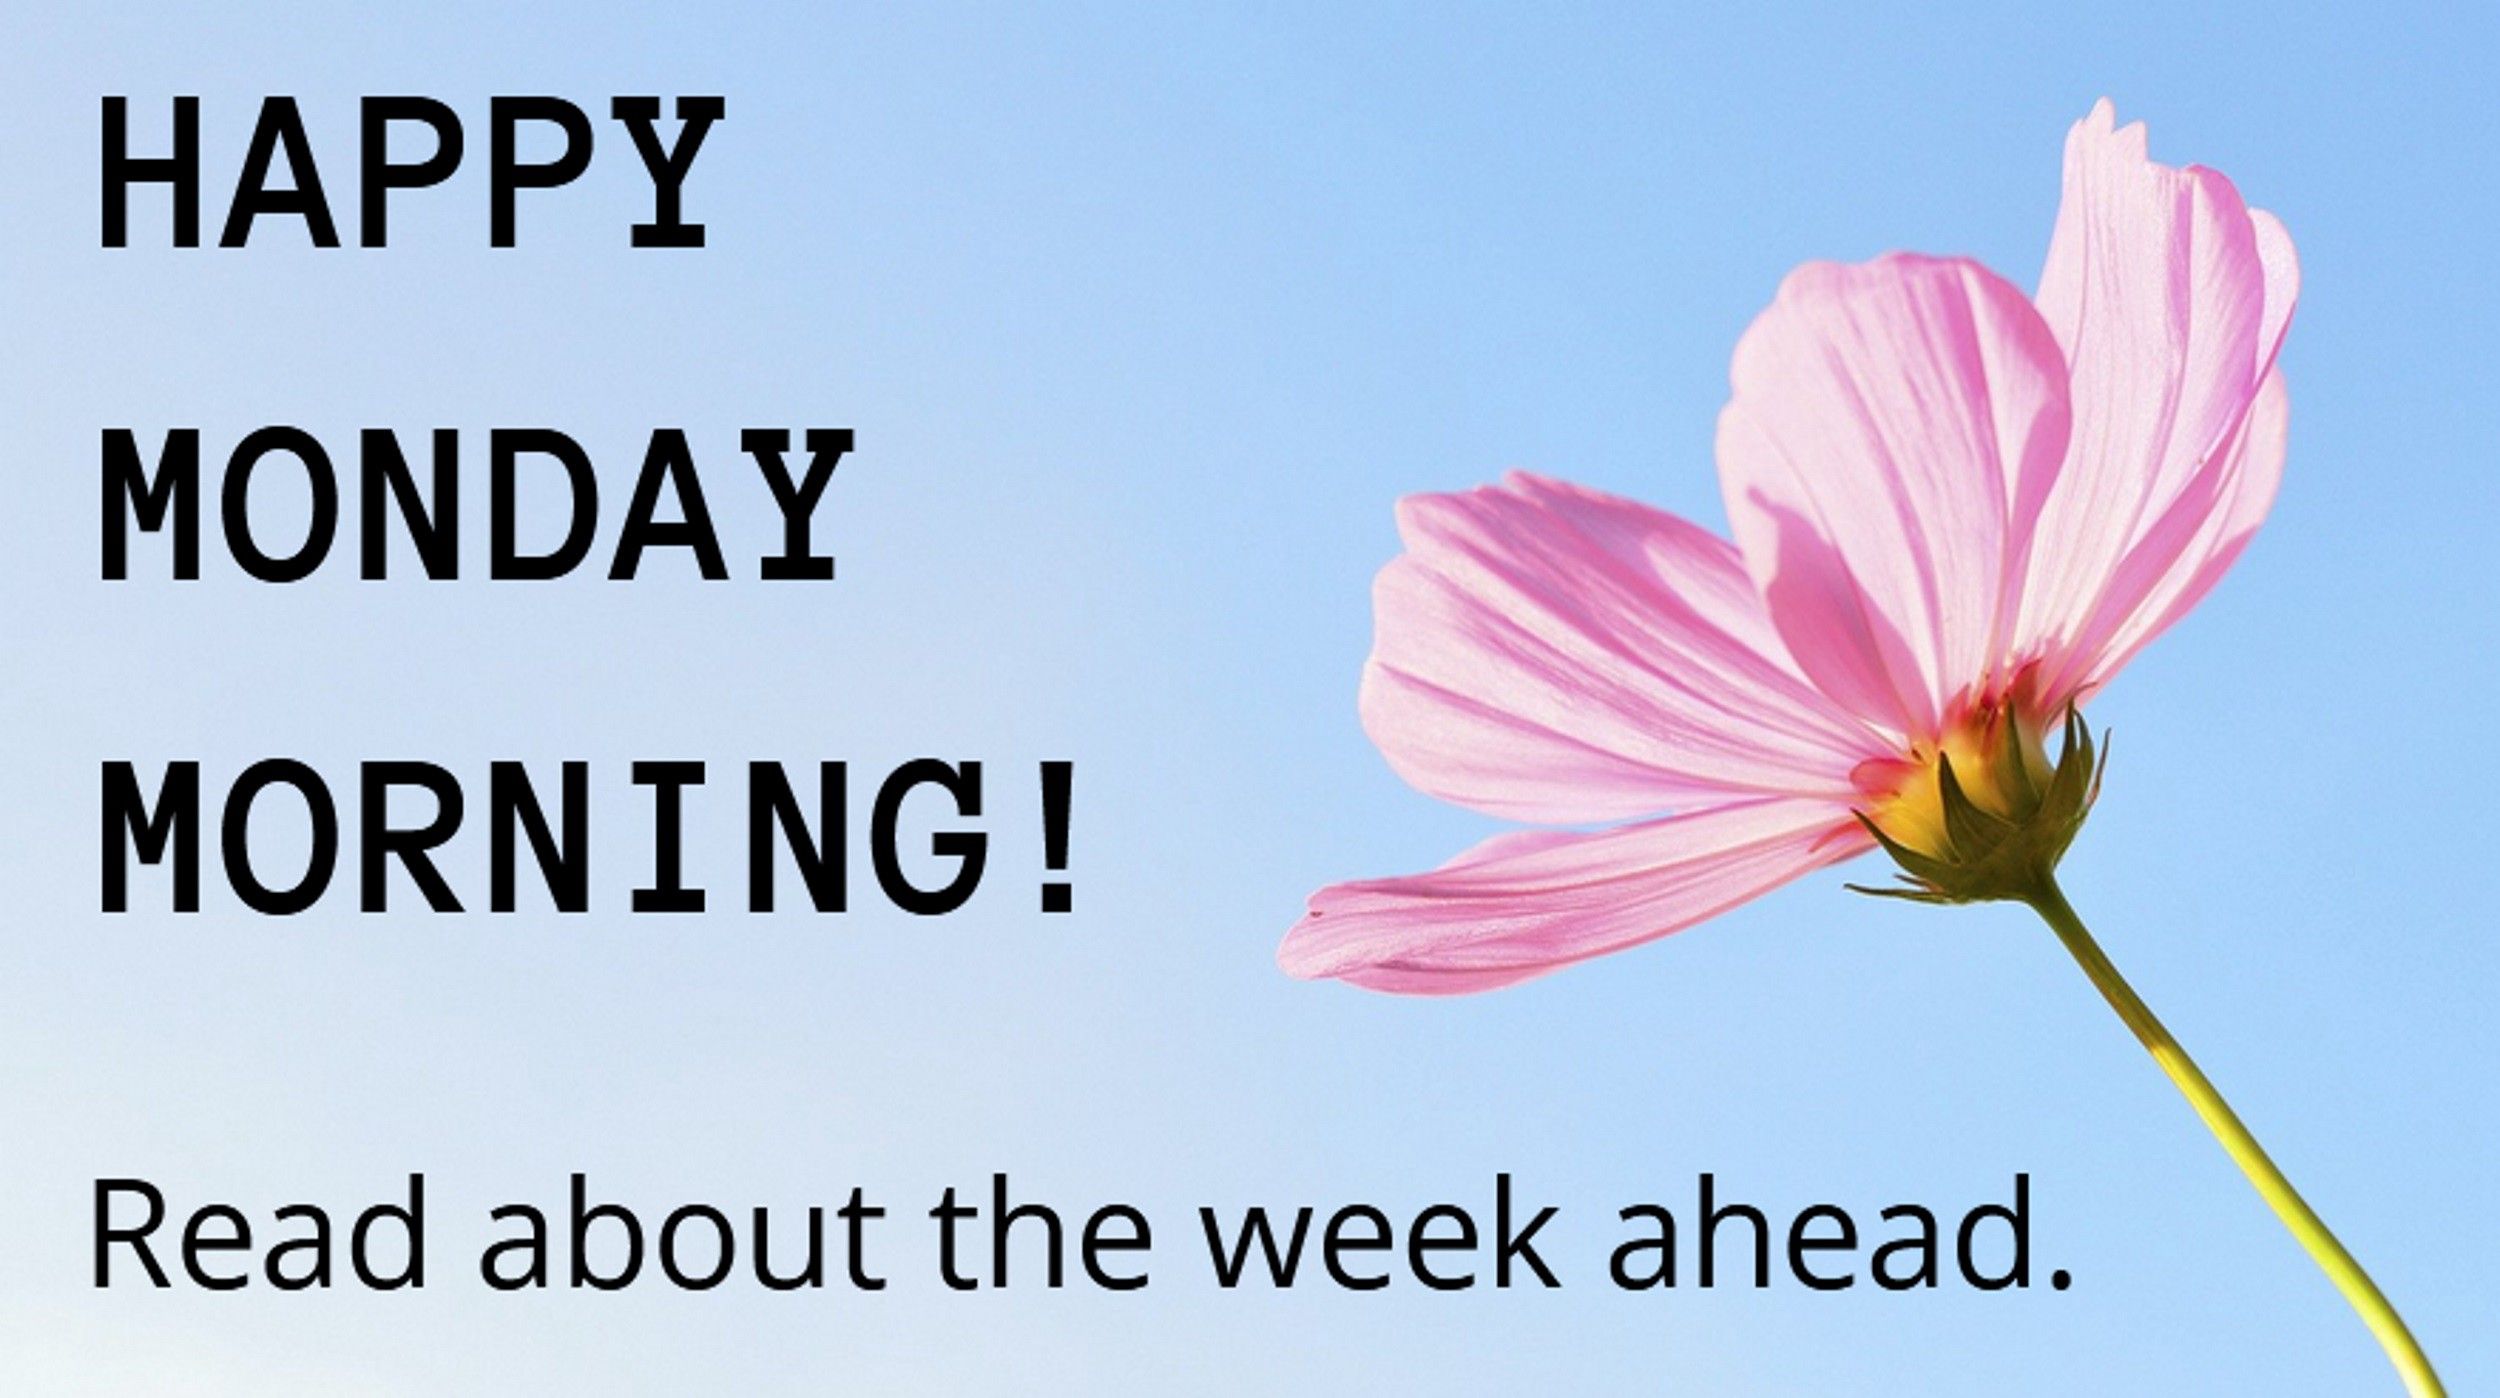 Pink flower on blue background and Monday Morning greeting